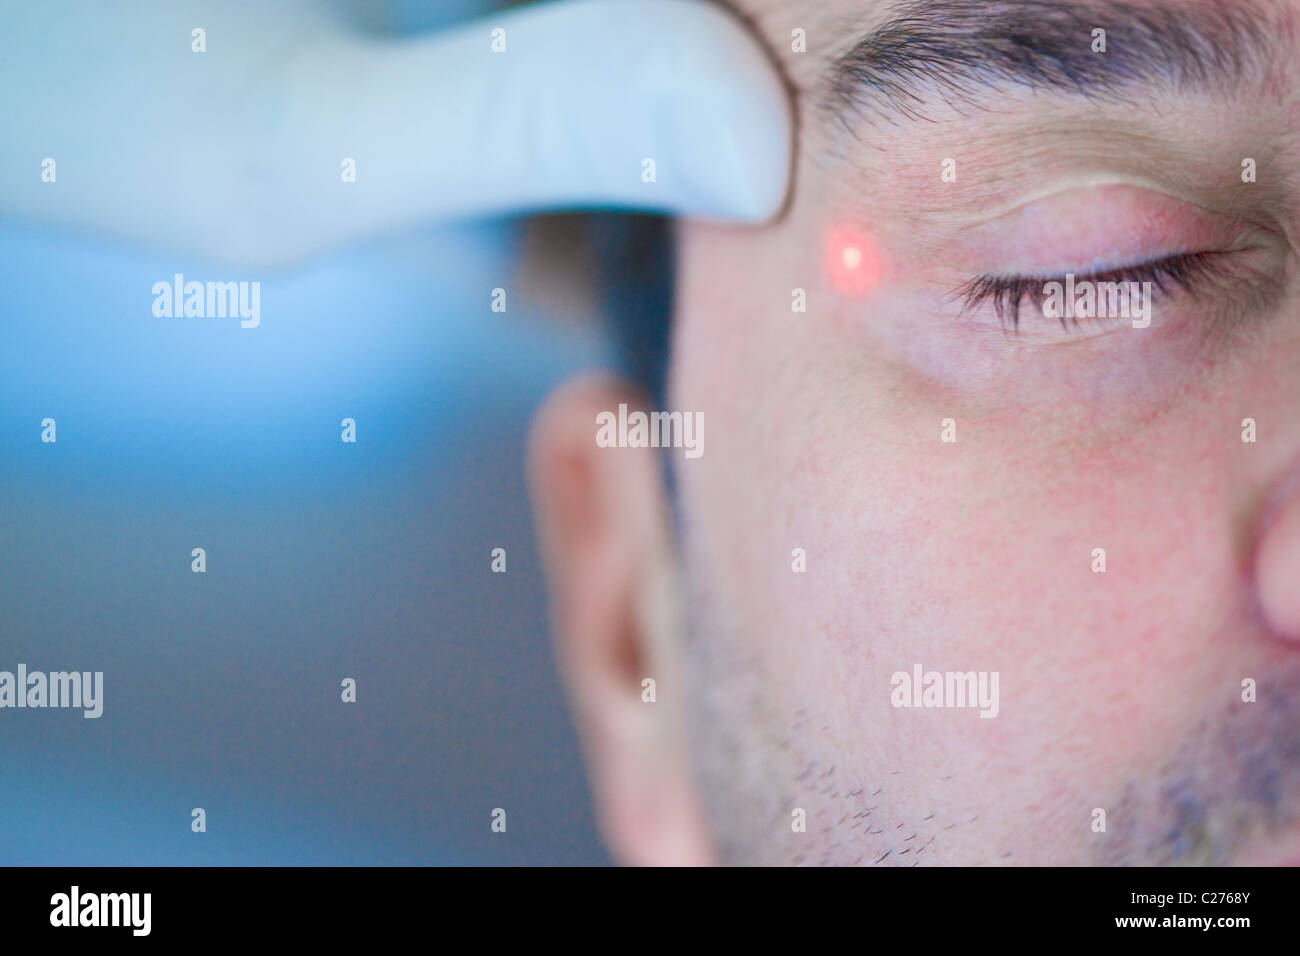 Man Receiving Laser Treatment on Face Stock Photo